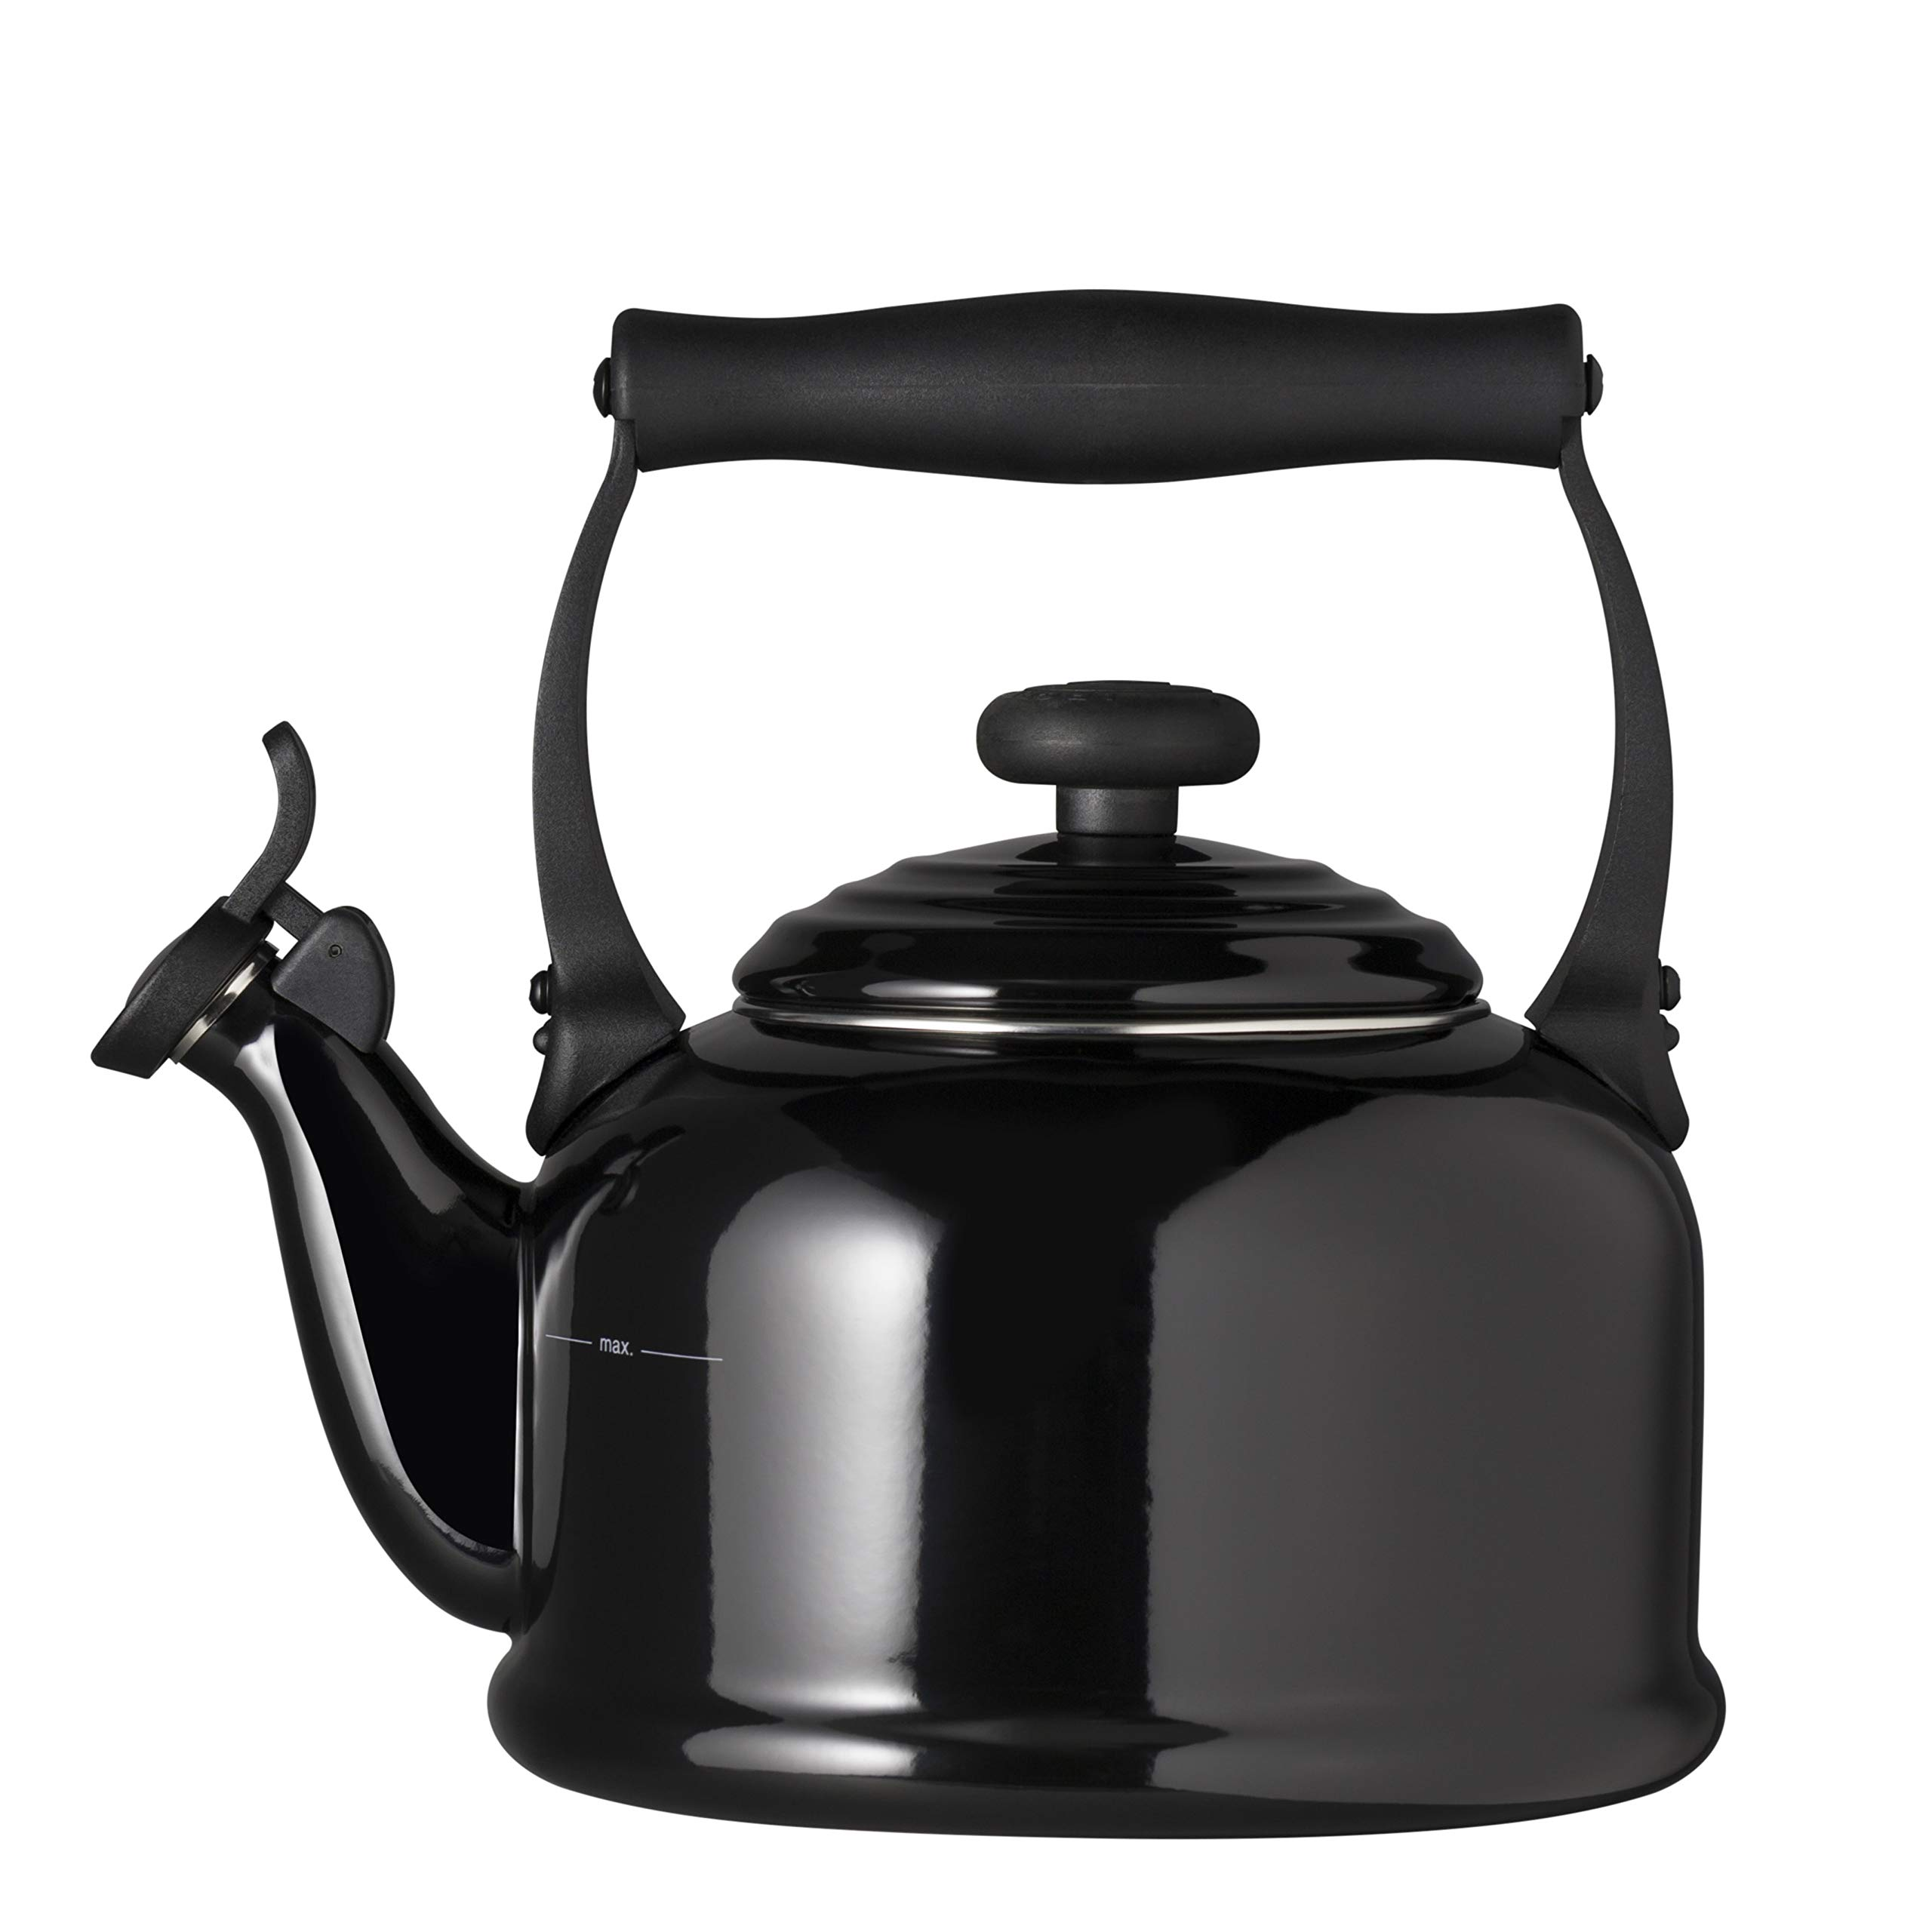 Le Creuset Traditional Kettle with Whistle, Black, 2.1 L